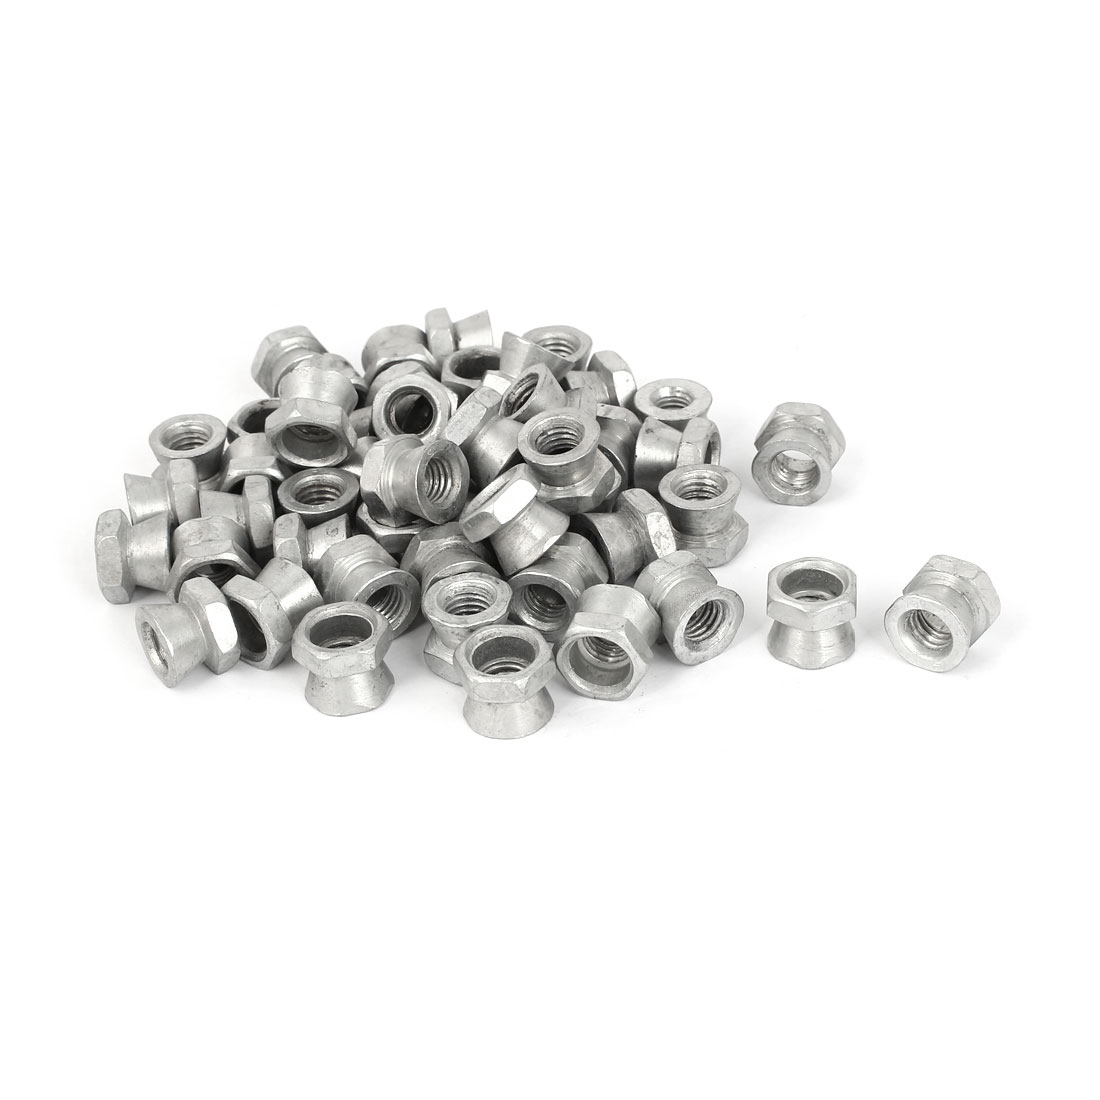 M10 Female Thread Zinc Plated Tamper Proof Security Shear Nuts 50 Pcs